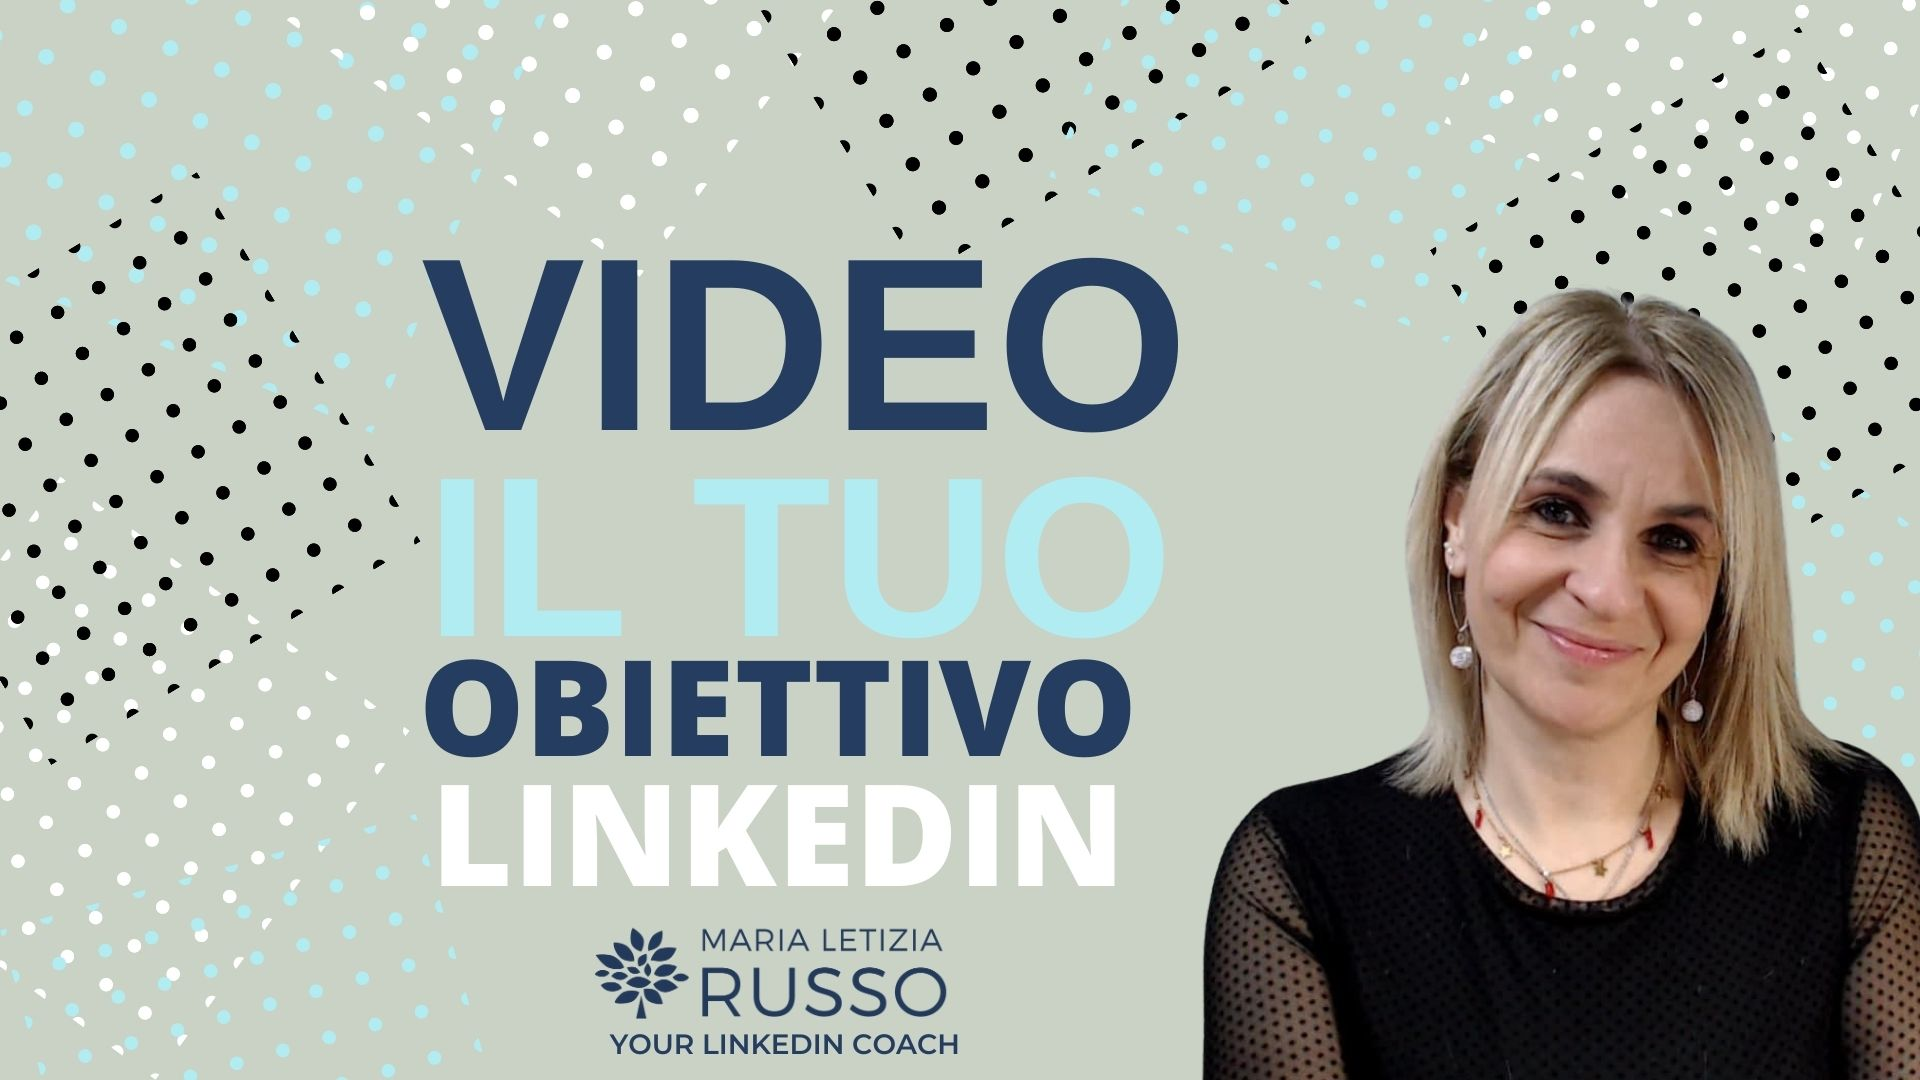 VIDEO OBIETTIVO LINKEDIN